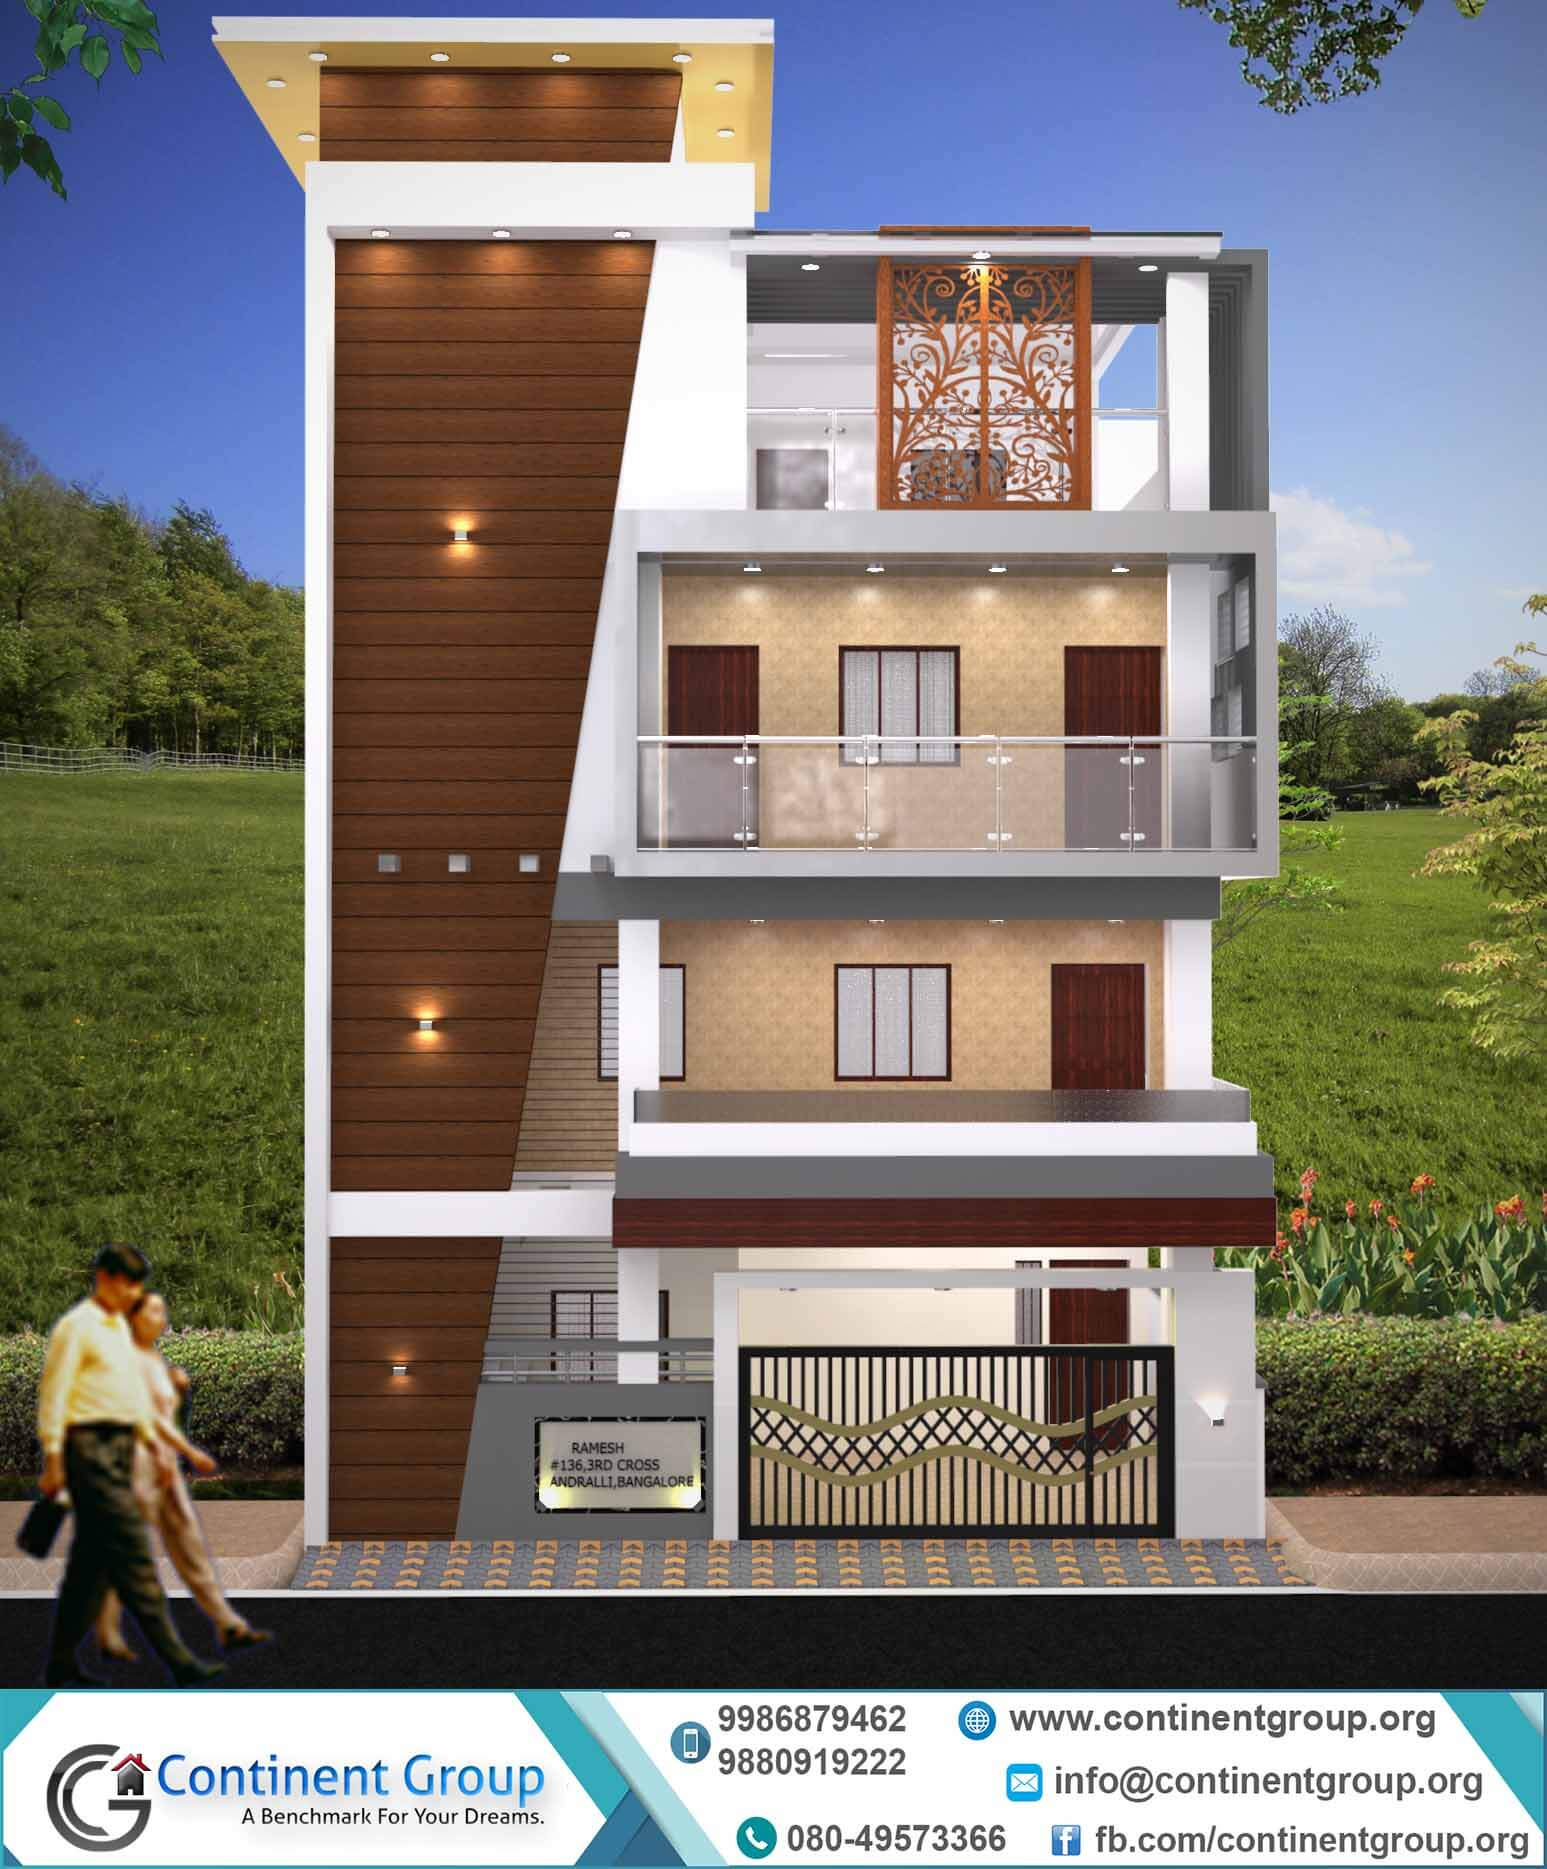 Building Front Elevation Designs Chennai : D building elevation front continent group